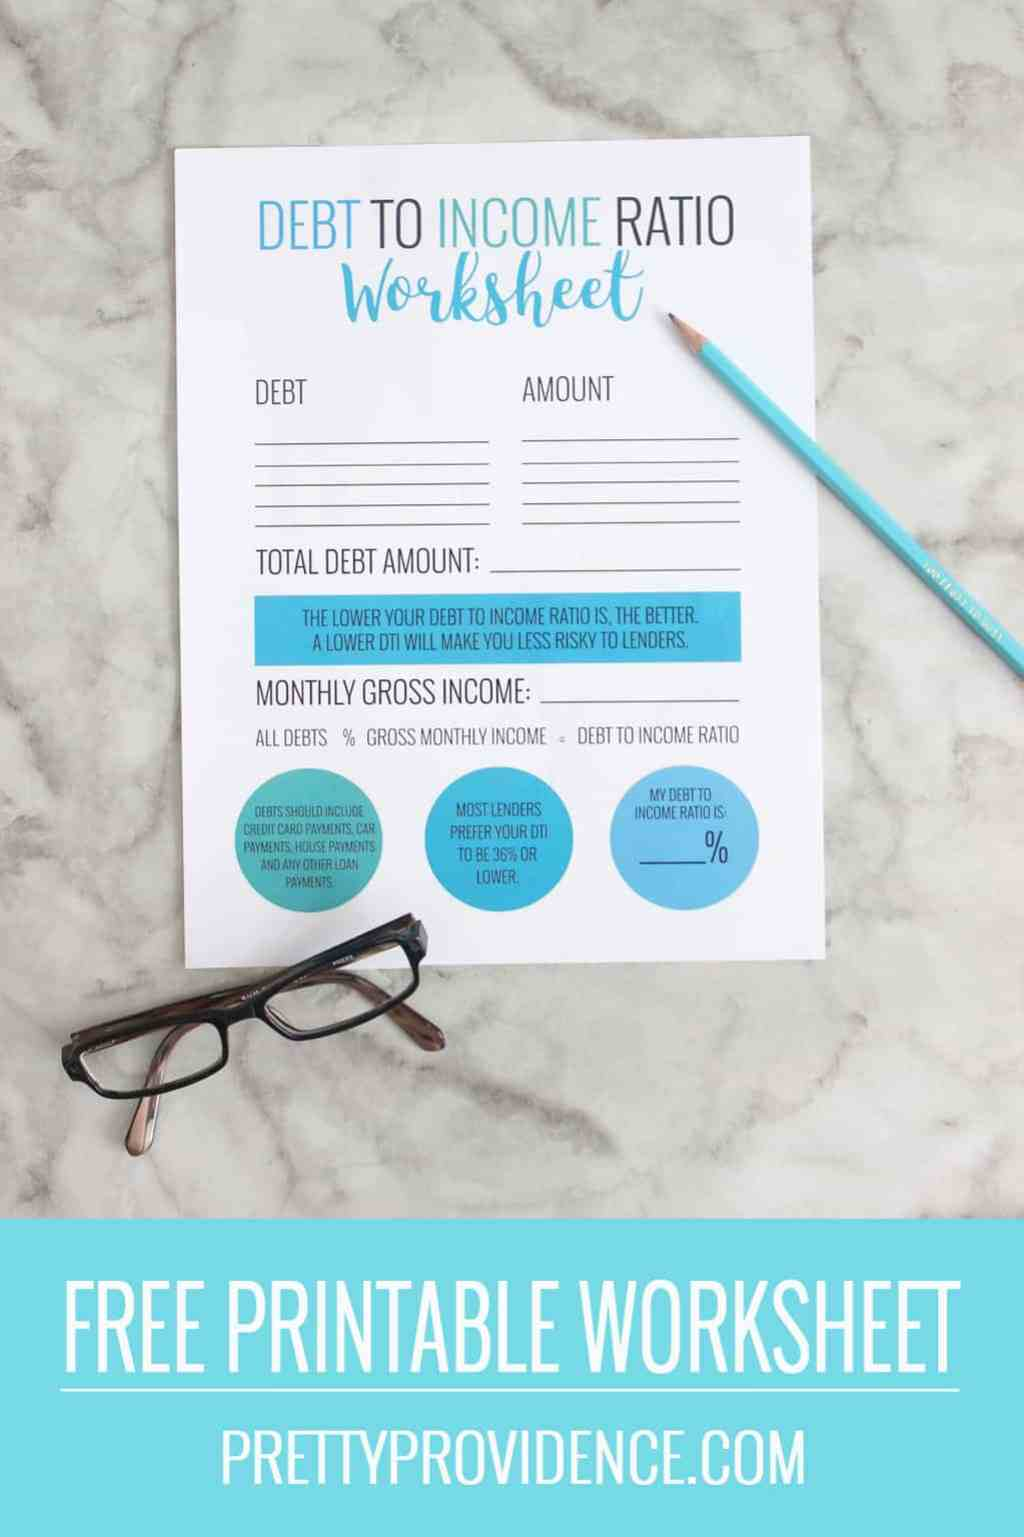 Awesome article with everything you need to know about the pre approval process! Also includes a simple free printable worksheet to help you easily determine your debt to income ratio.